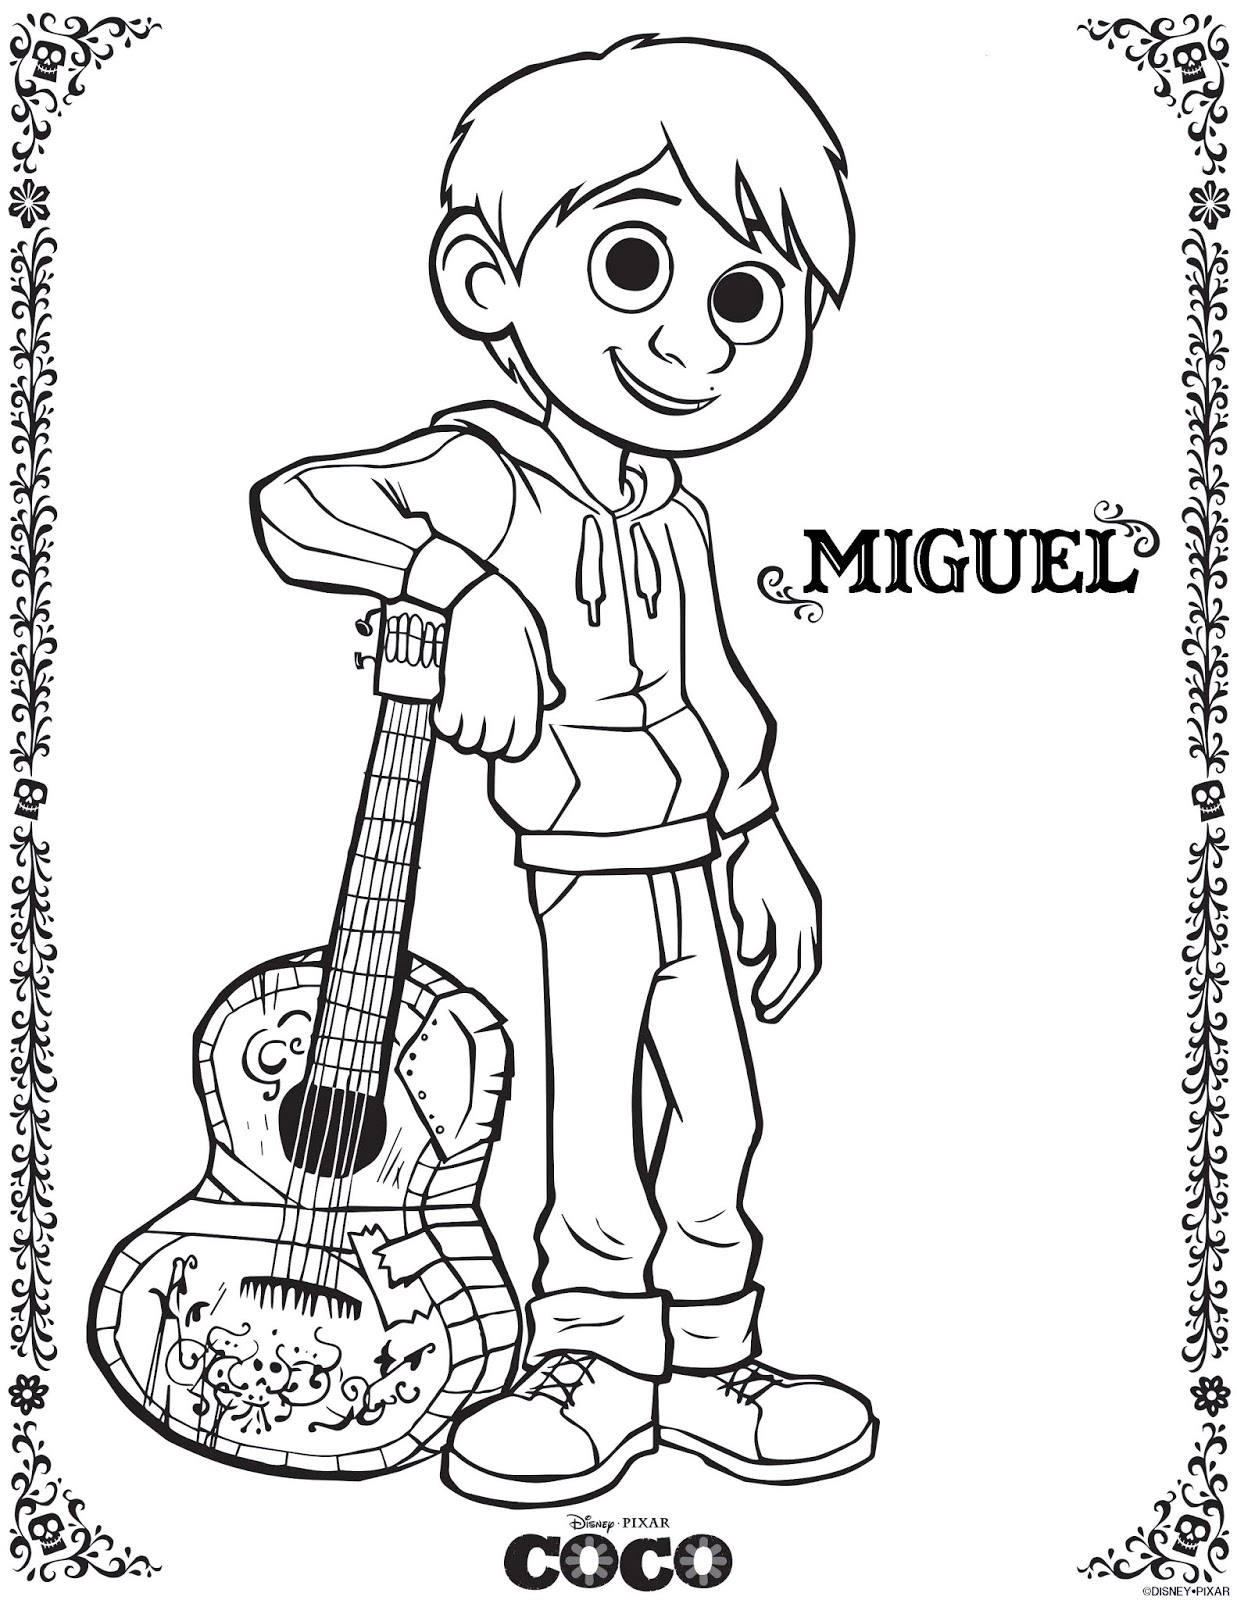 Pop Up Paint Booth >> Coco Coloring Pages (November 2018 Edition) - Miguel coloring pages